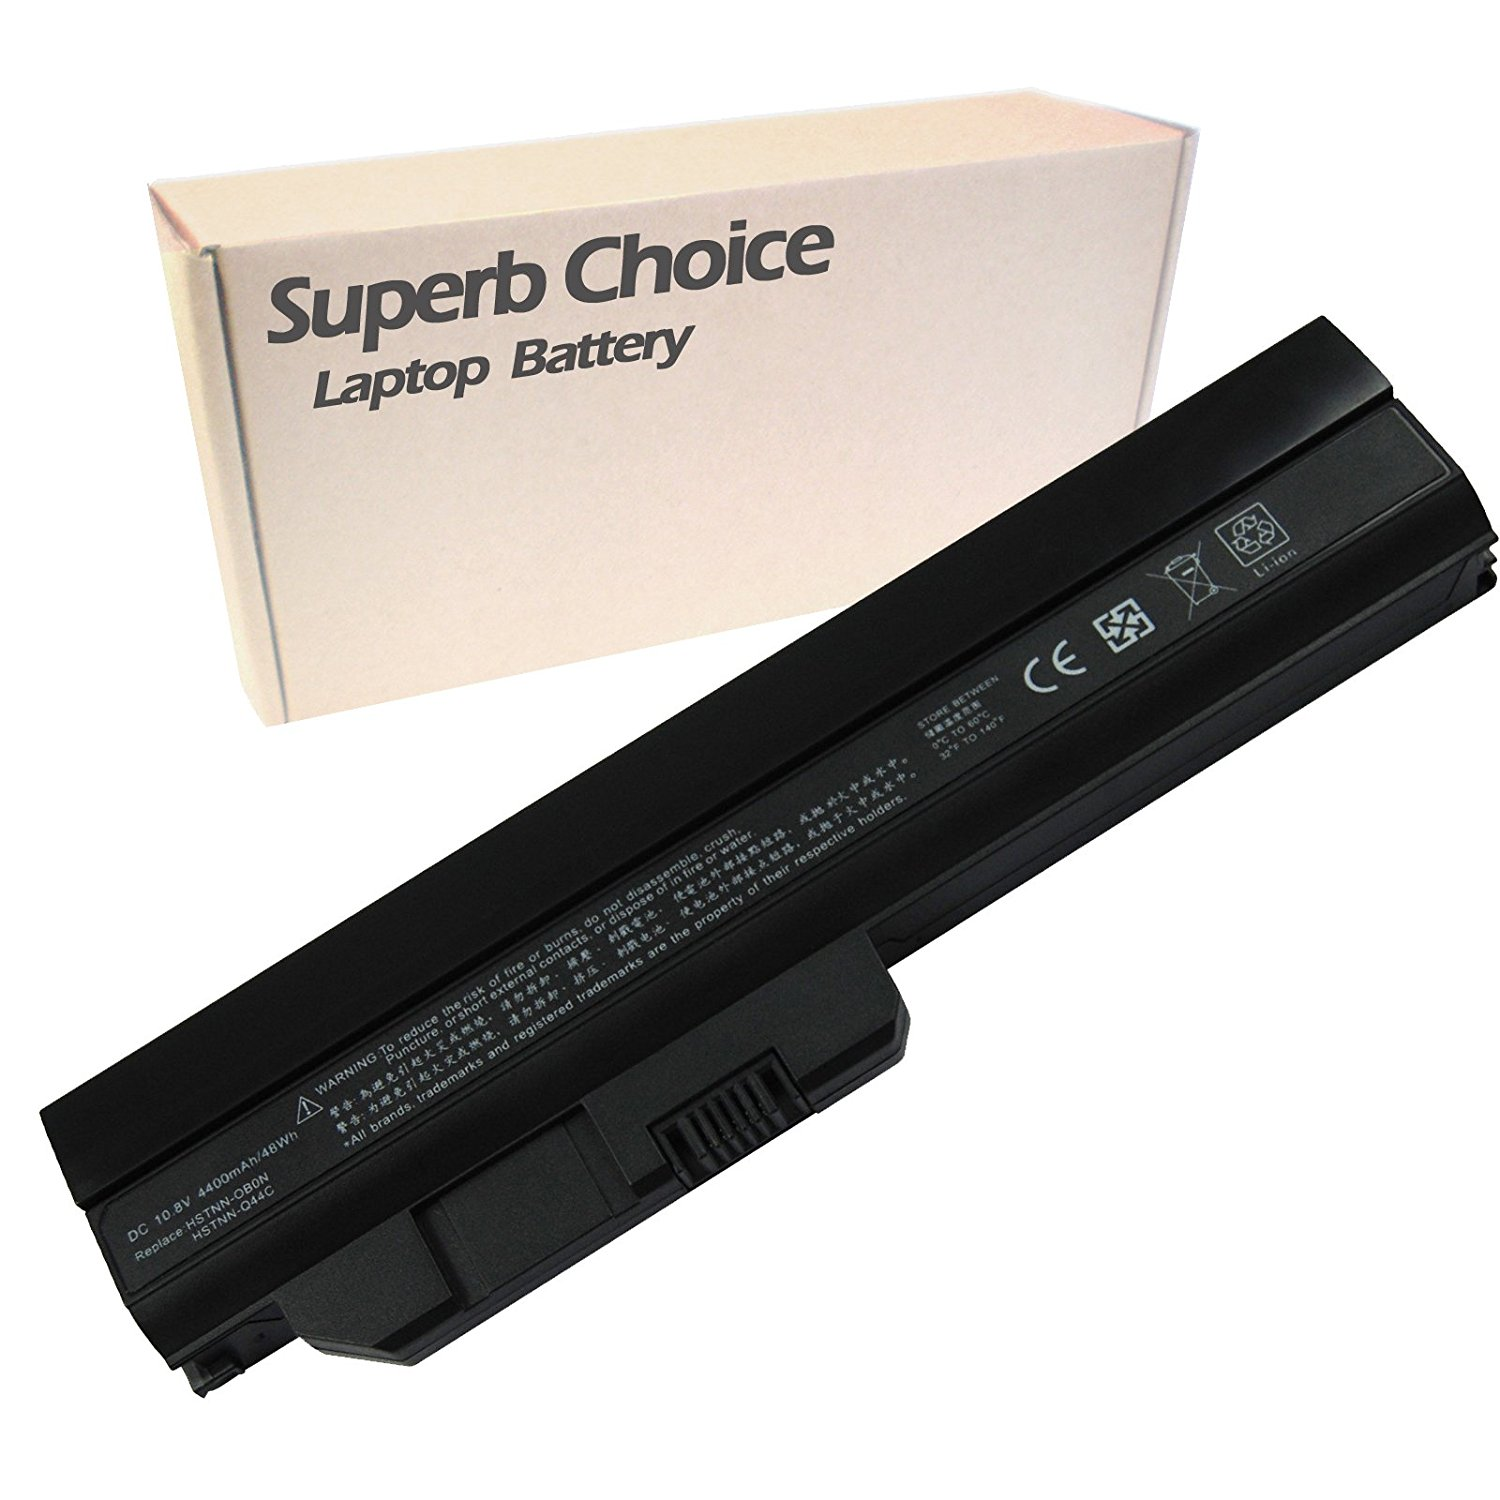 HP Mini 311-1037NR Laptop Battery - Premium Superb Choice® 6-cell Li-ion battery